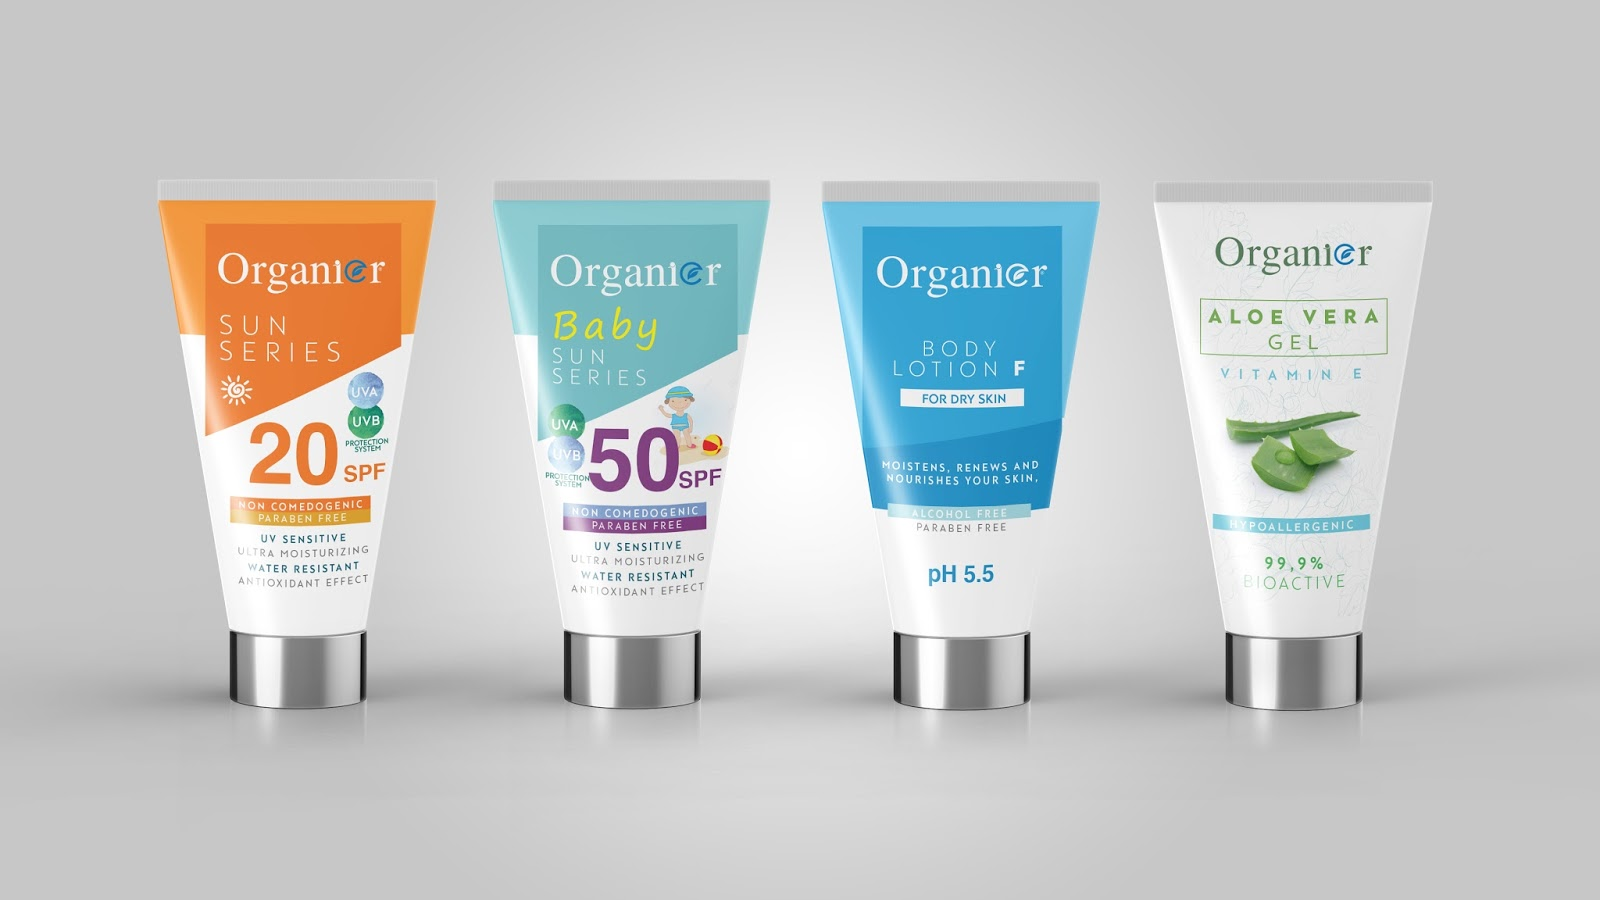 Organier Sun Series Packaging World Creative